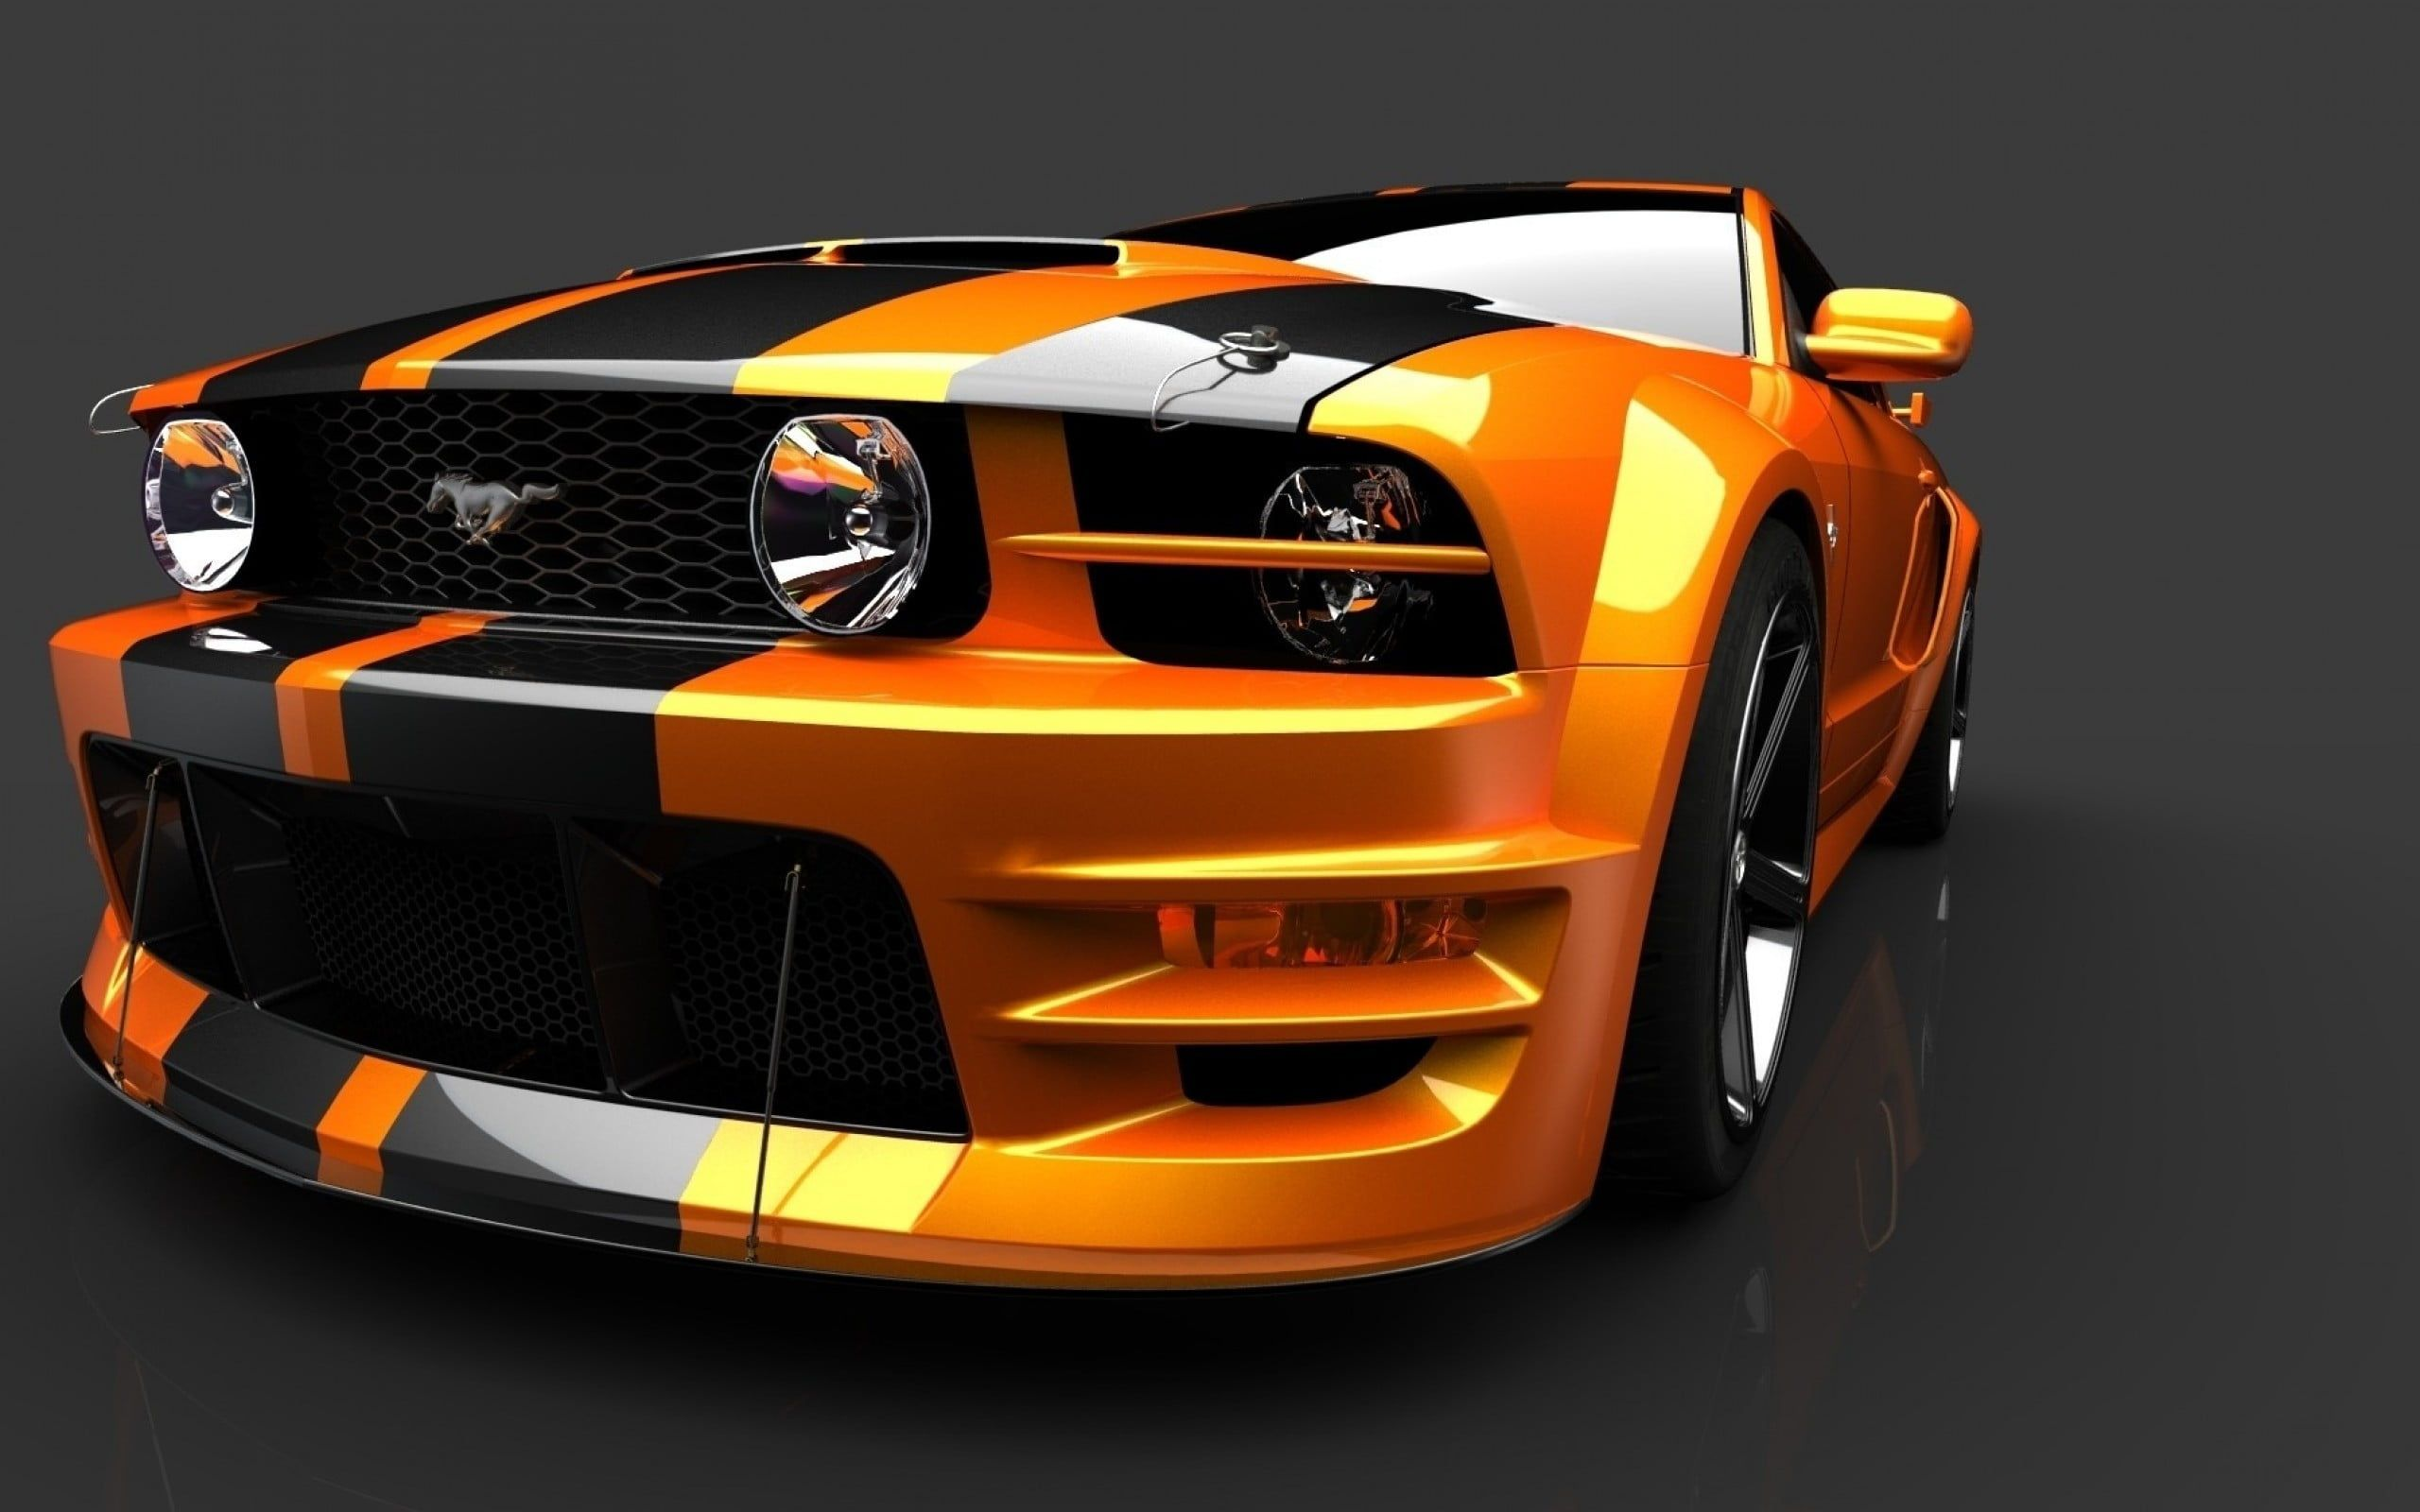 Yellow And Black Ford Mustang Ford Mustang Car 2k Wallpaper Hdwallpaper Desktop Mustang Ford Mustang Ford